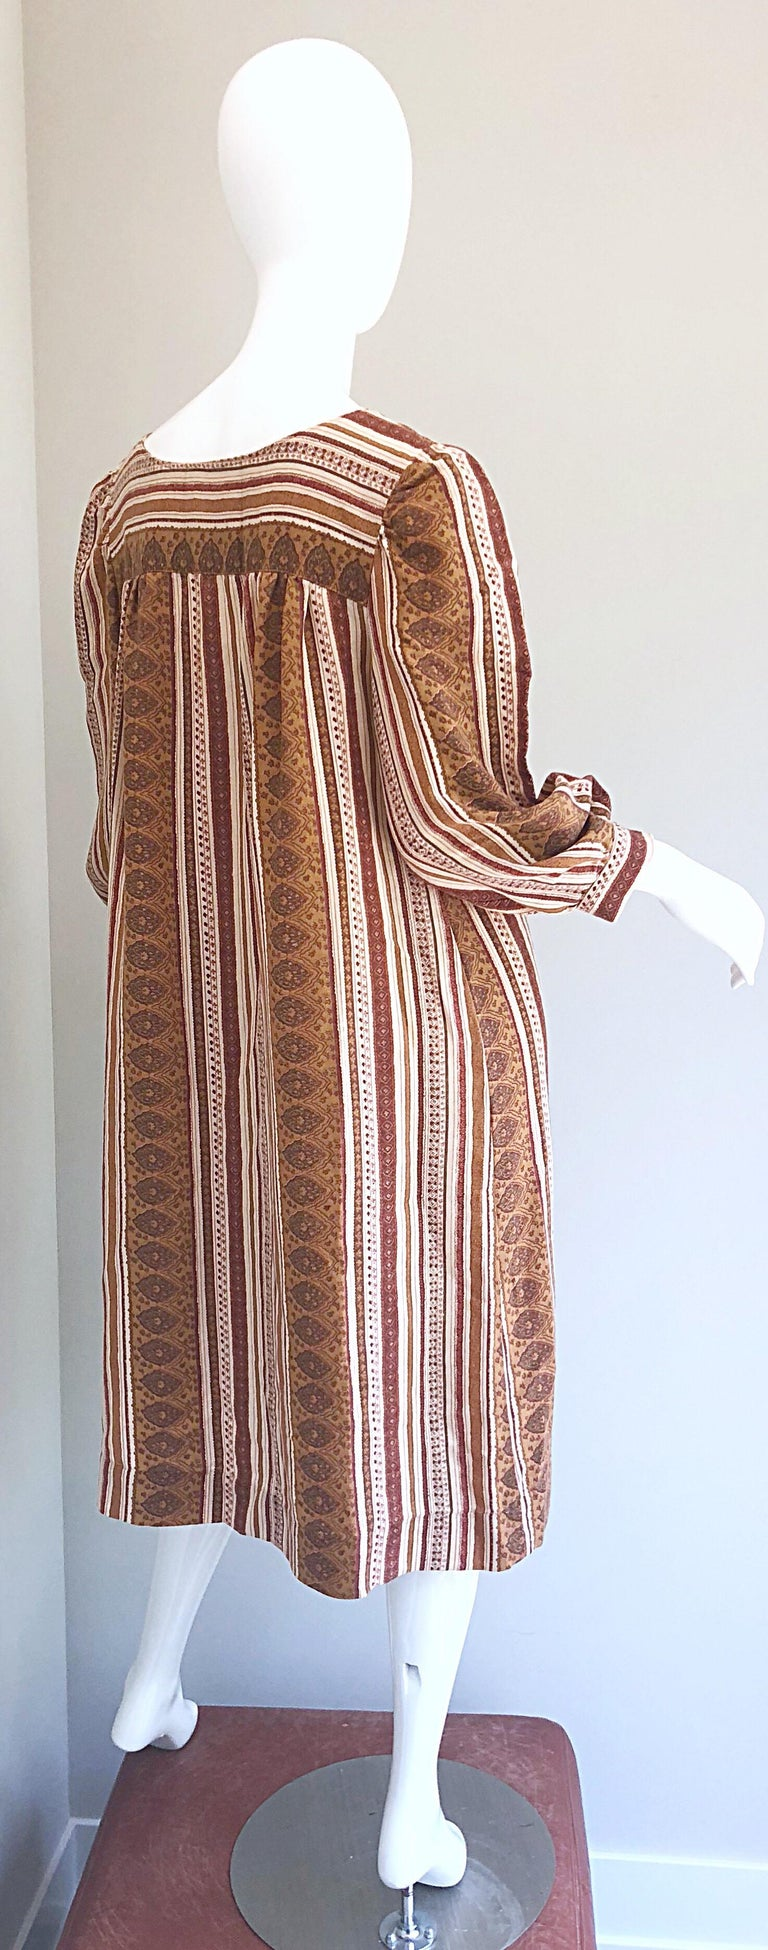 1970s Boho Chic Brown and Ivory Soft Cotton Paisley Print Vintage 70s Dress For Sale 1